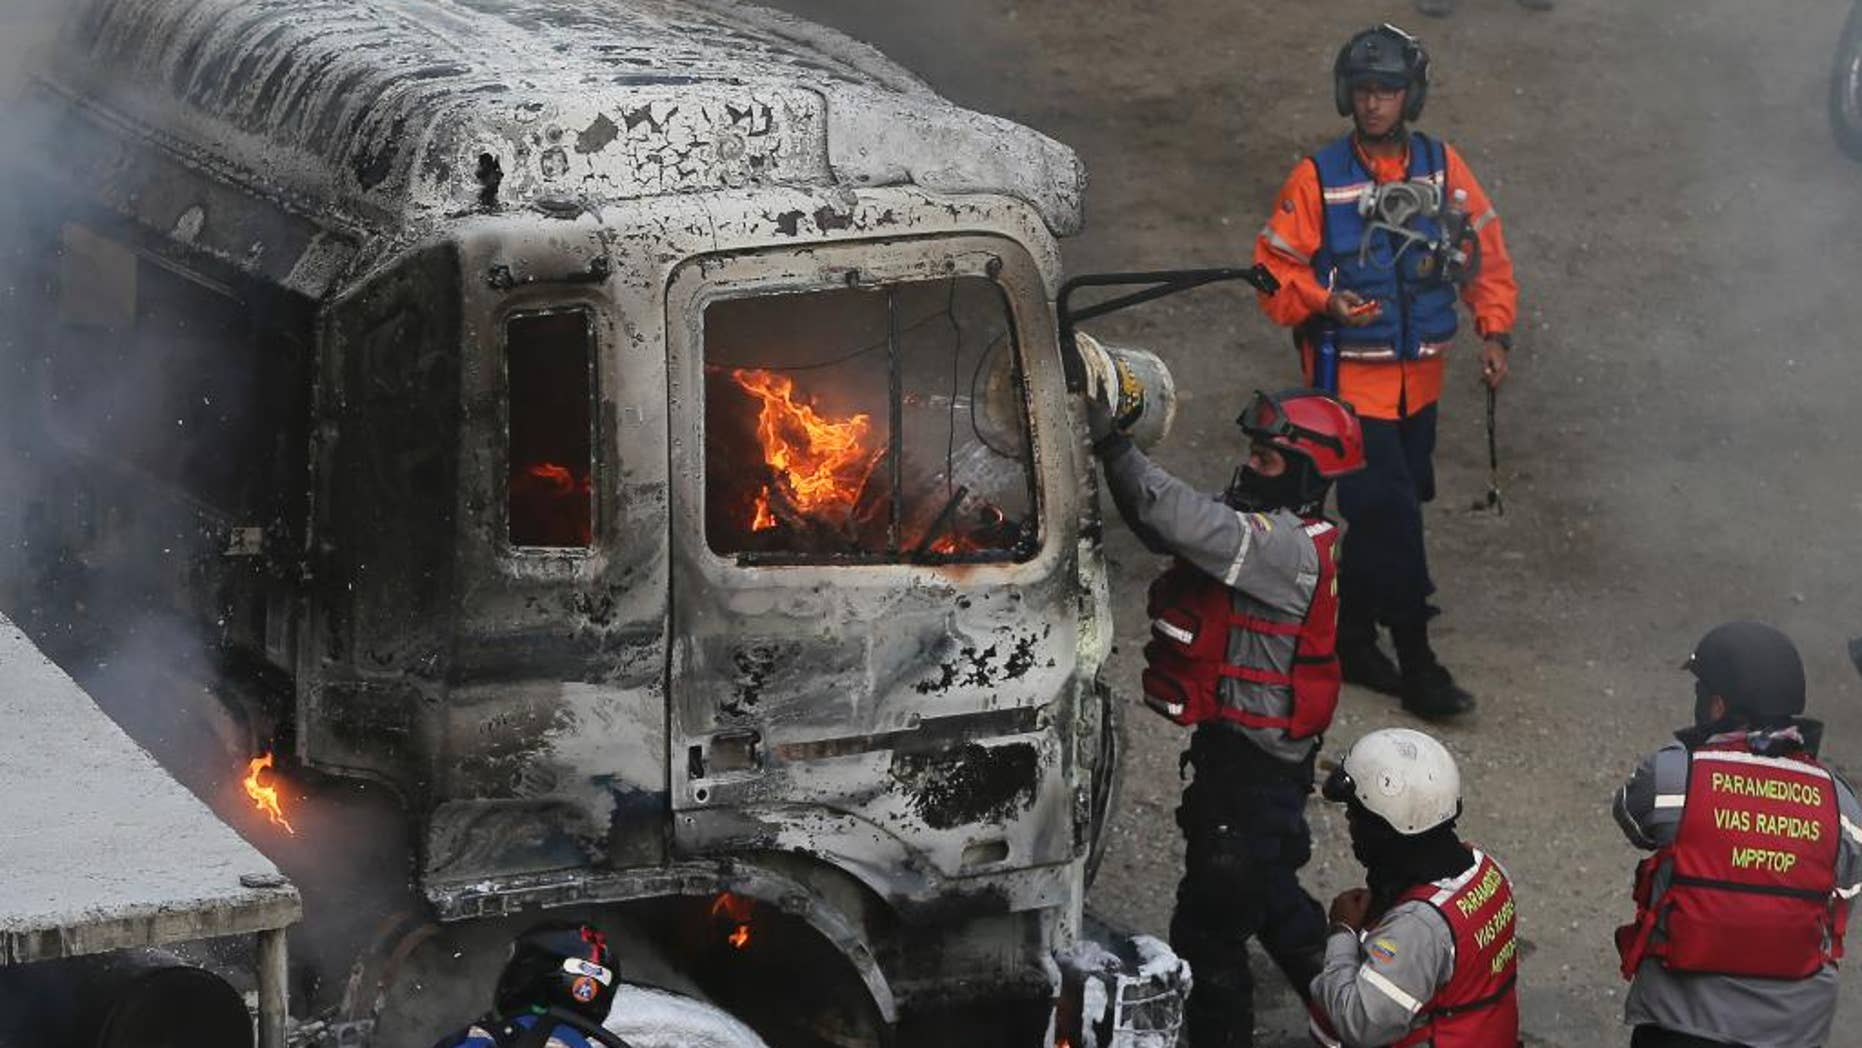 Fire-fighters put out a truck set on fire during anti-government protests in Caracas, Venezuela, Monday, April 24, 2017. Thousands of protesters shut down the capital city's main highway to express their disgust with the socialist administration of President Nicolas Maduro. Protesters in least a dozen other cities also staged sit-ins as the protest movement is entering its fourth week. (AP Photo/Fernando Llano)